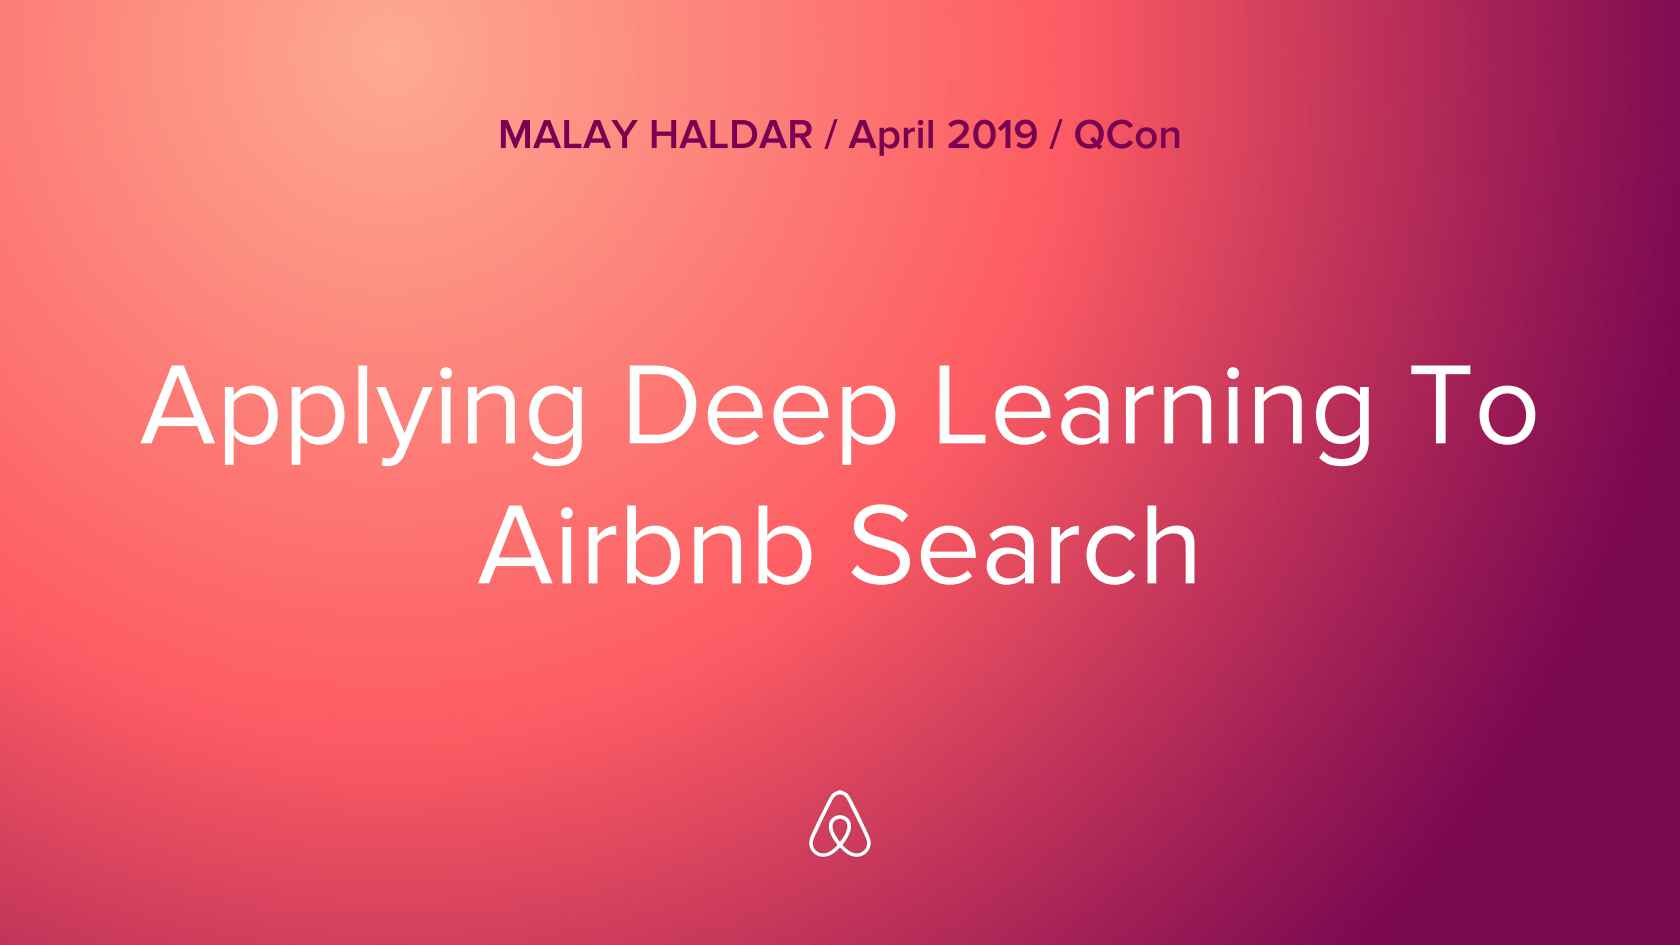 Applying Deep Learning to Airbnb Search